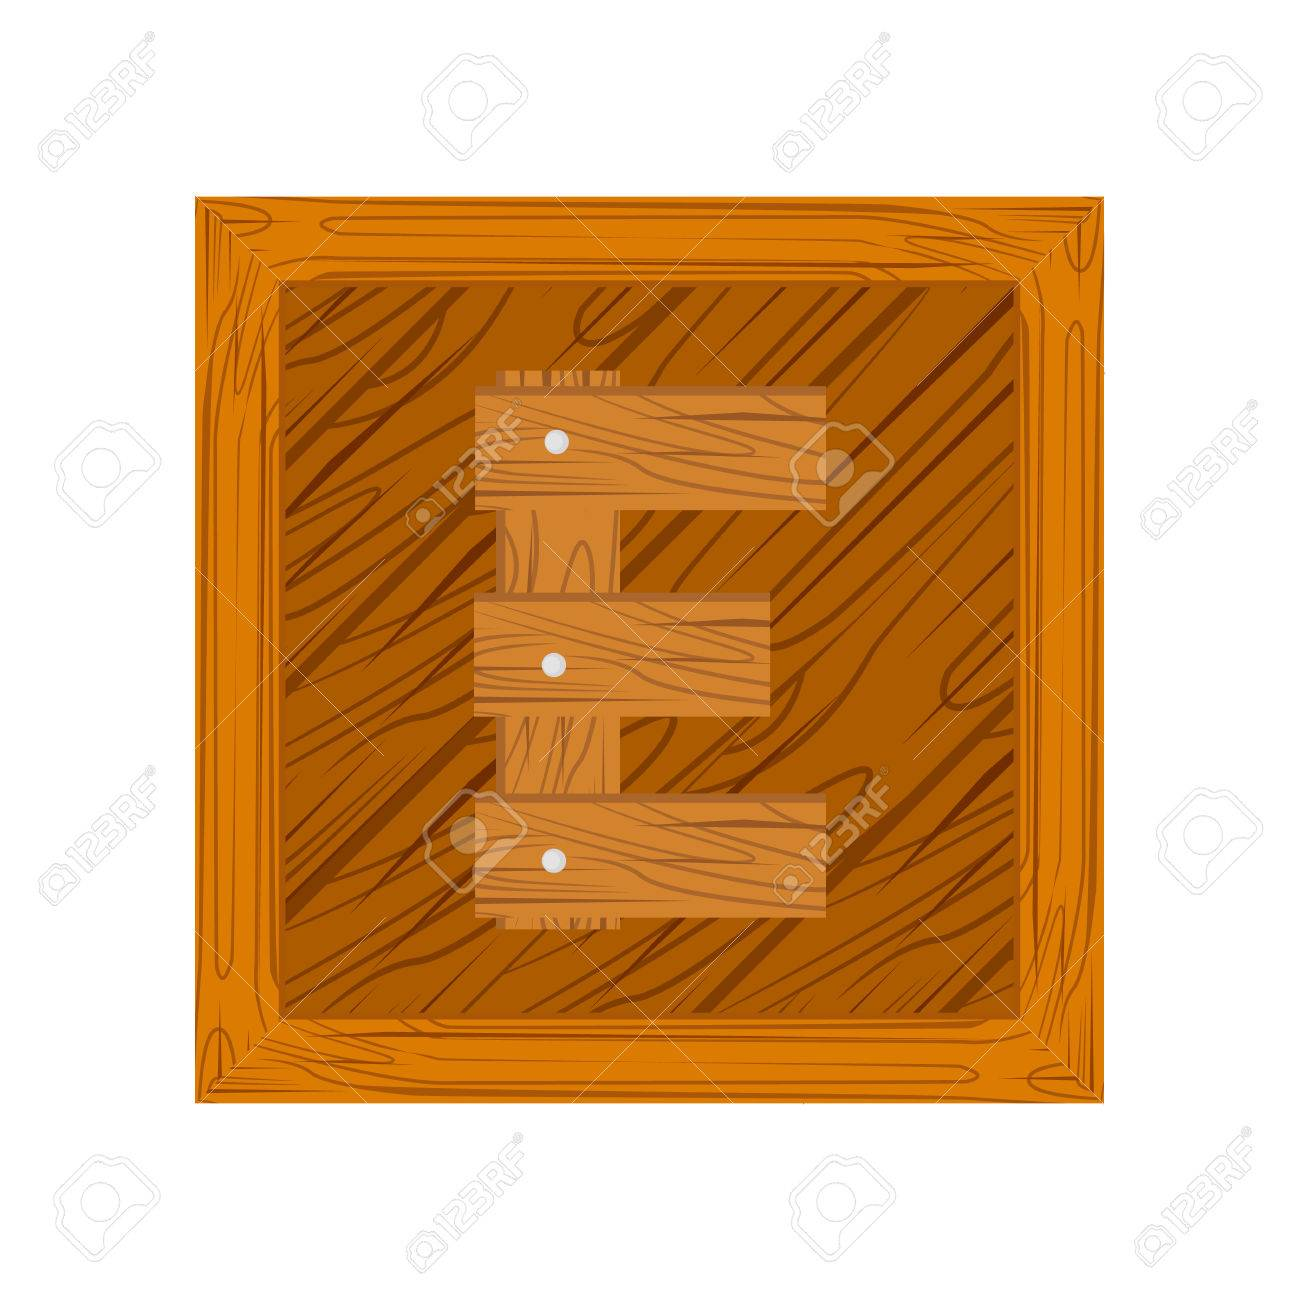 Wooden Block Alphabet E Letter Icon Isolated On White Background